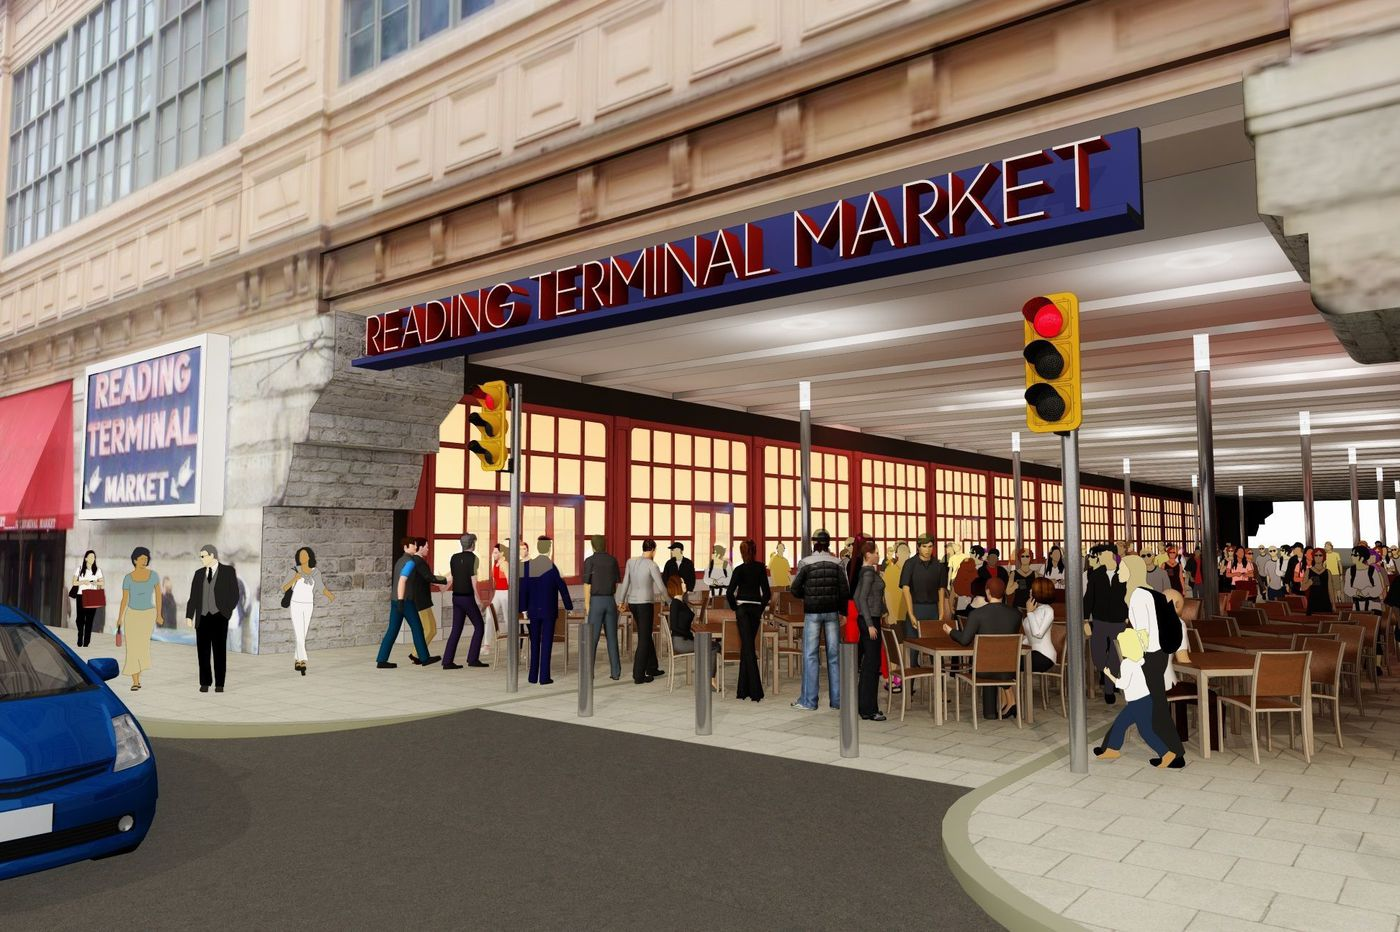 Outside Philly's Reading Terminal Market, a pedestrian plaza to come to Filbert Street